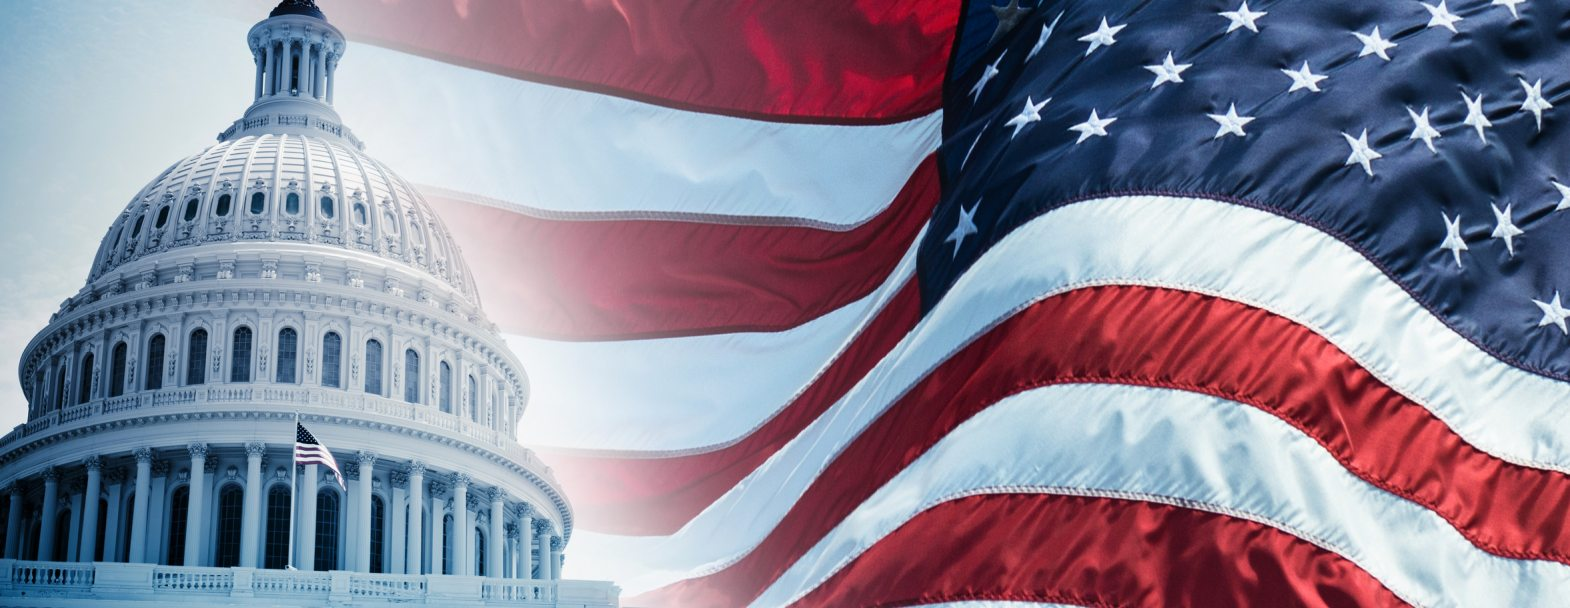 Elections de 2020 aux Etats-Unis, Donald Trump vs Joe Biden / IStock